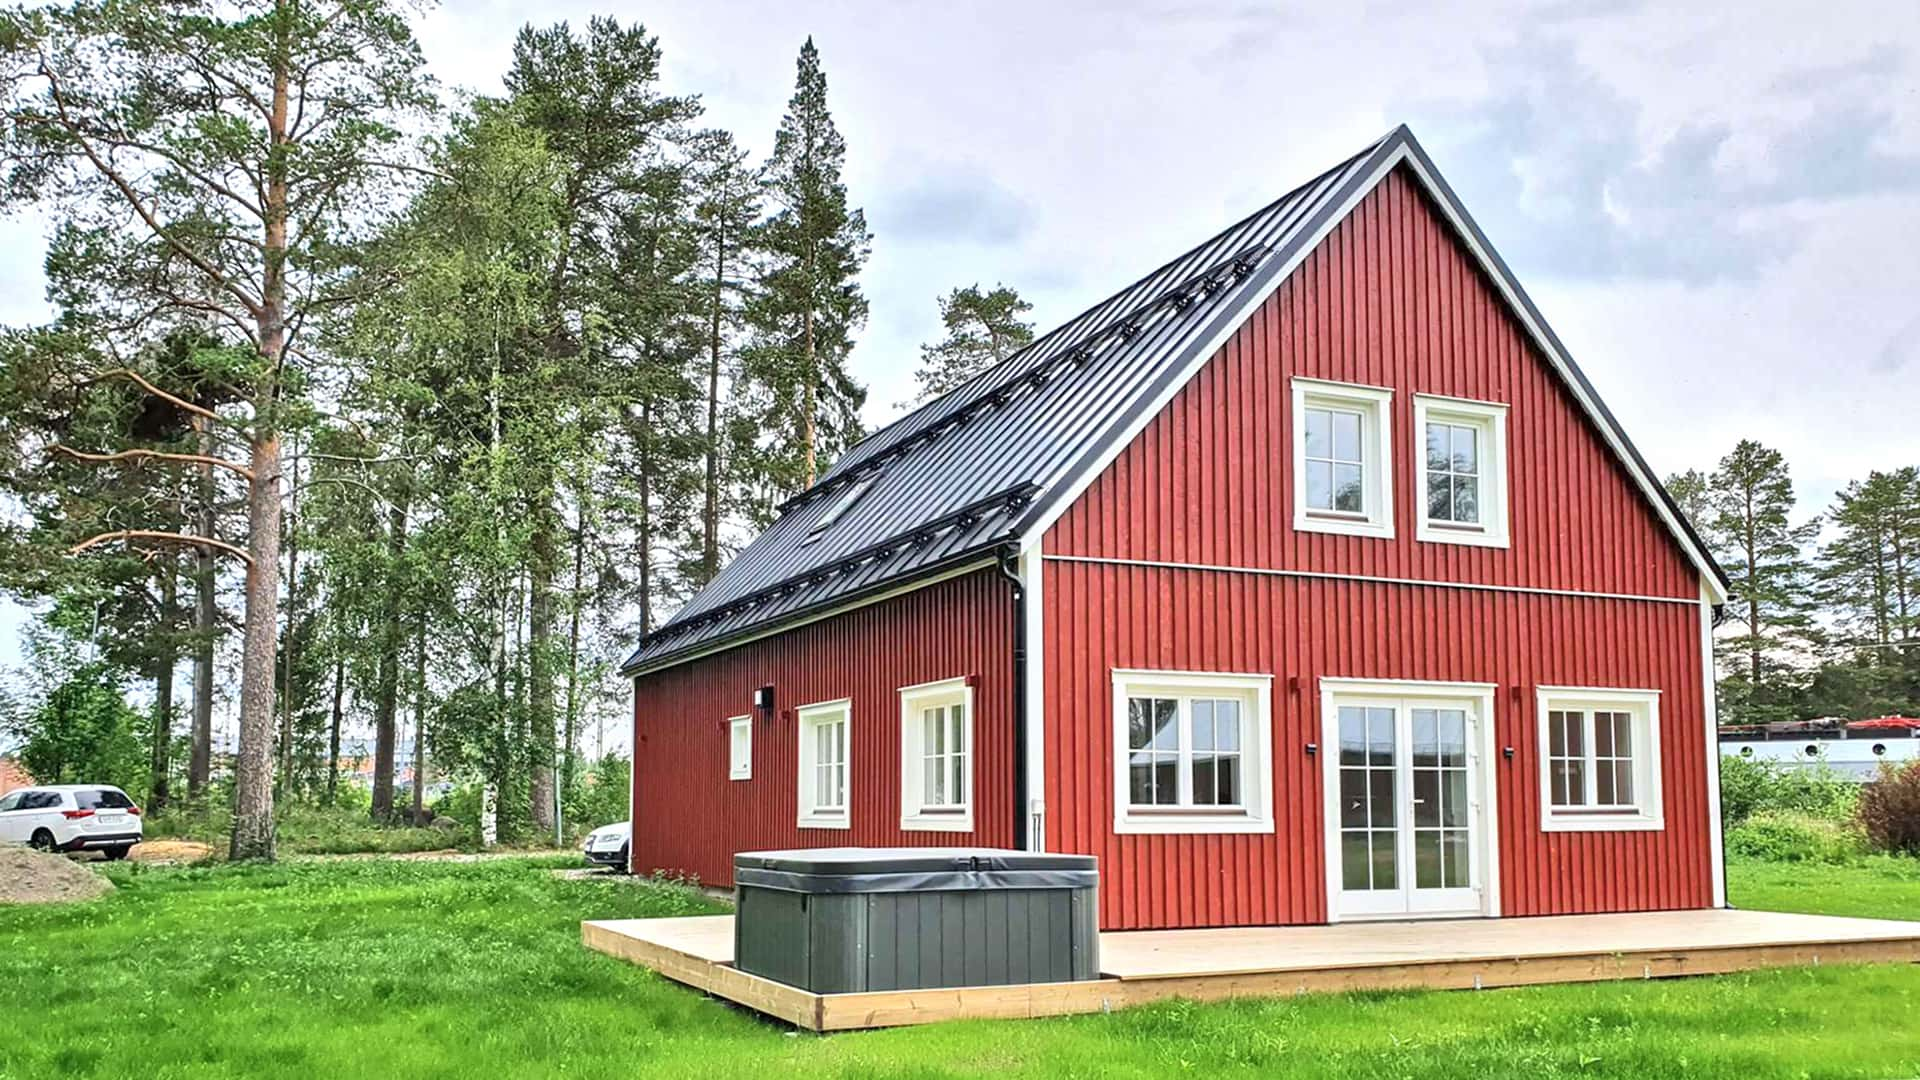 Wooden House | Notviken 4:68